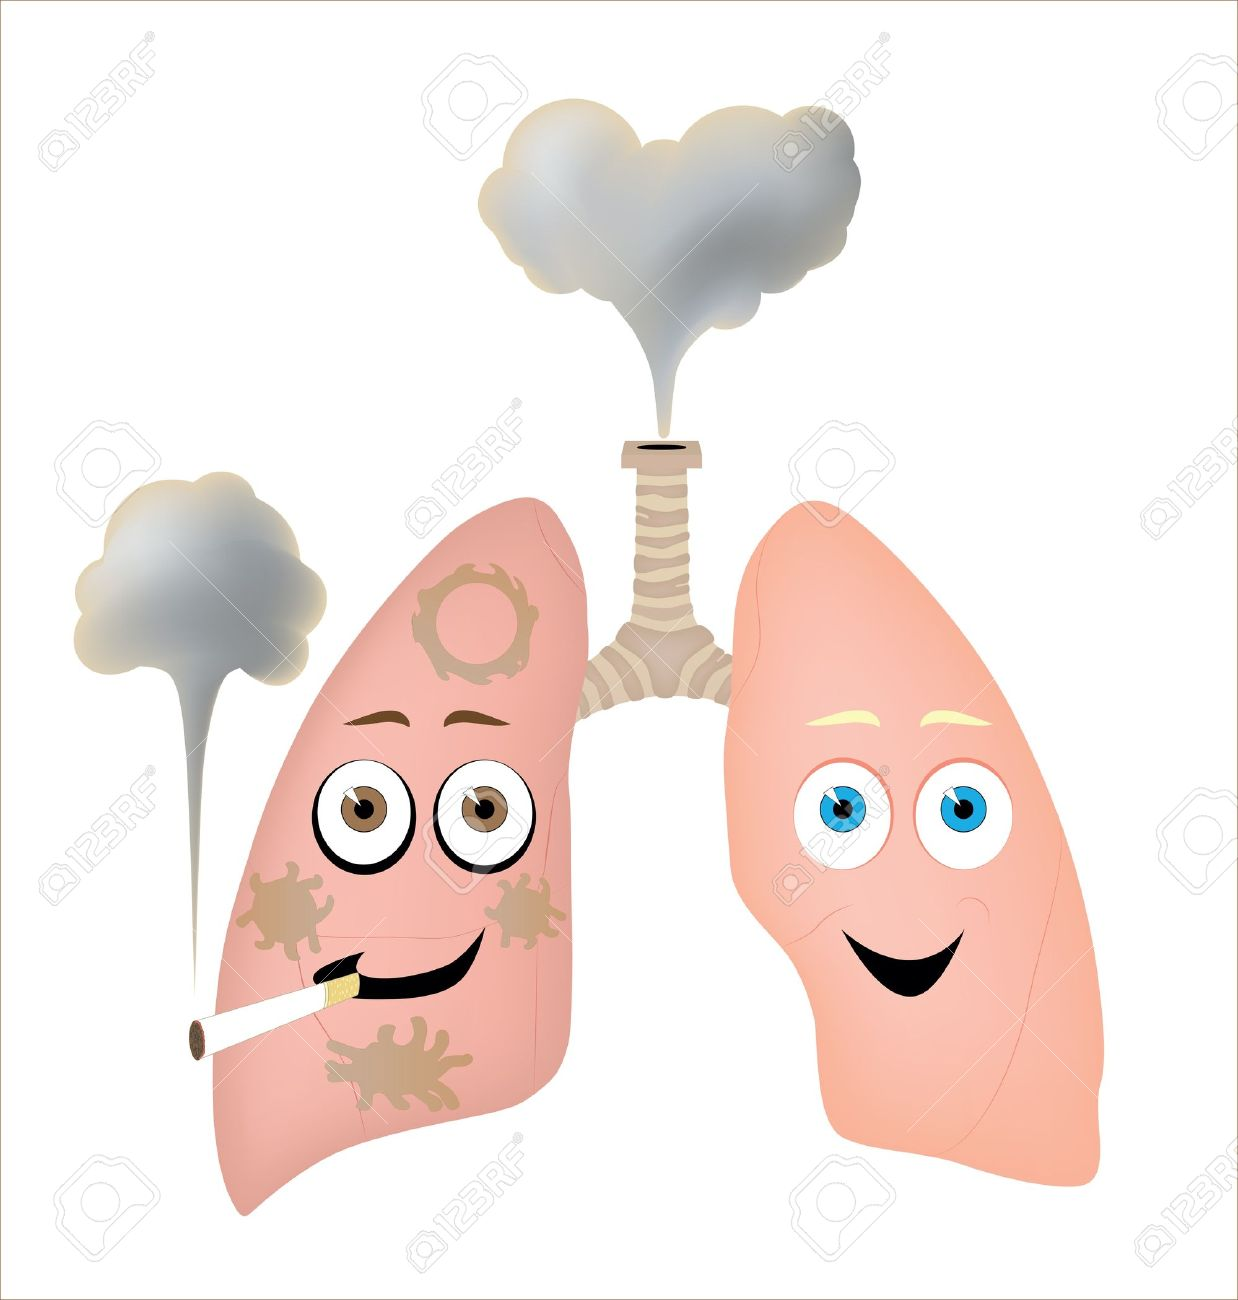 cancer clipart respiratory disease #38723378